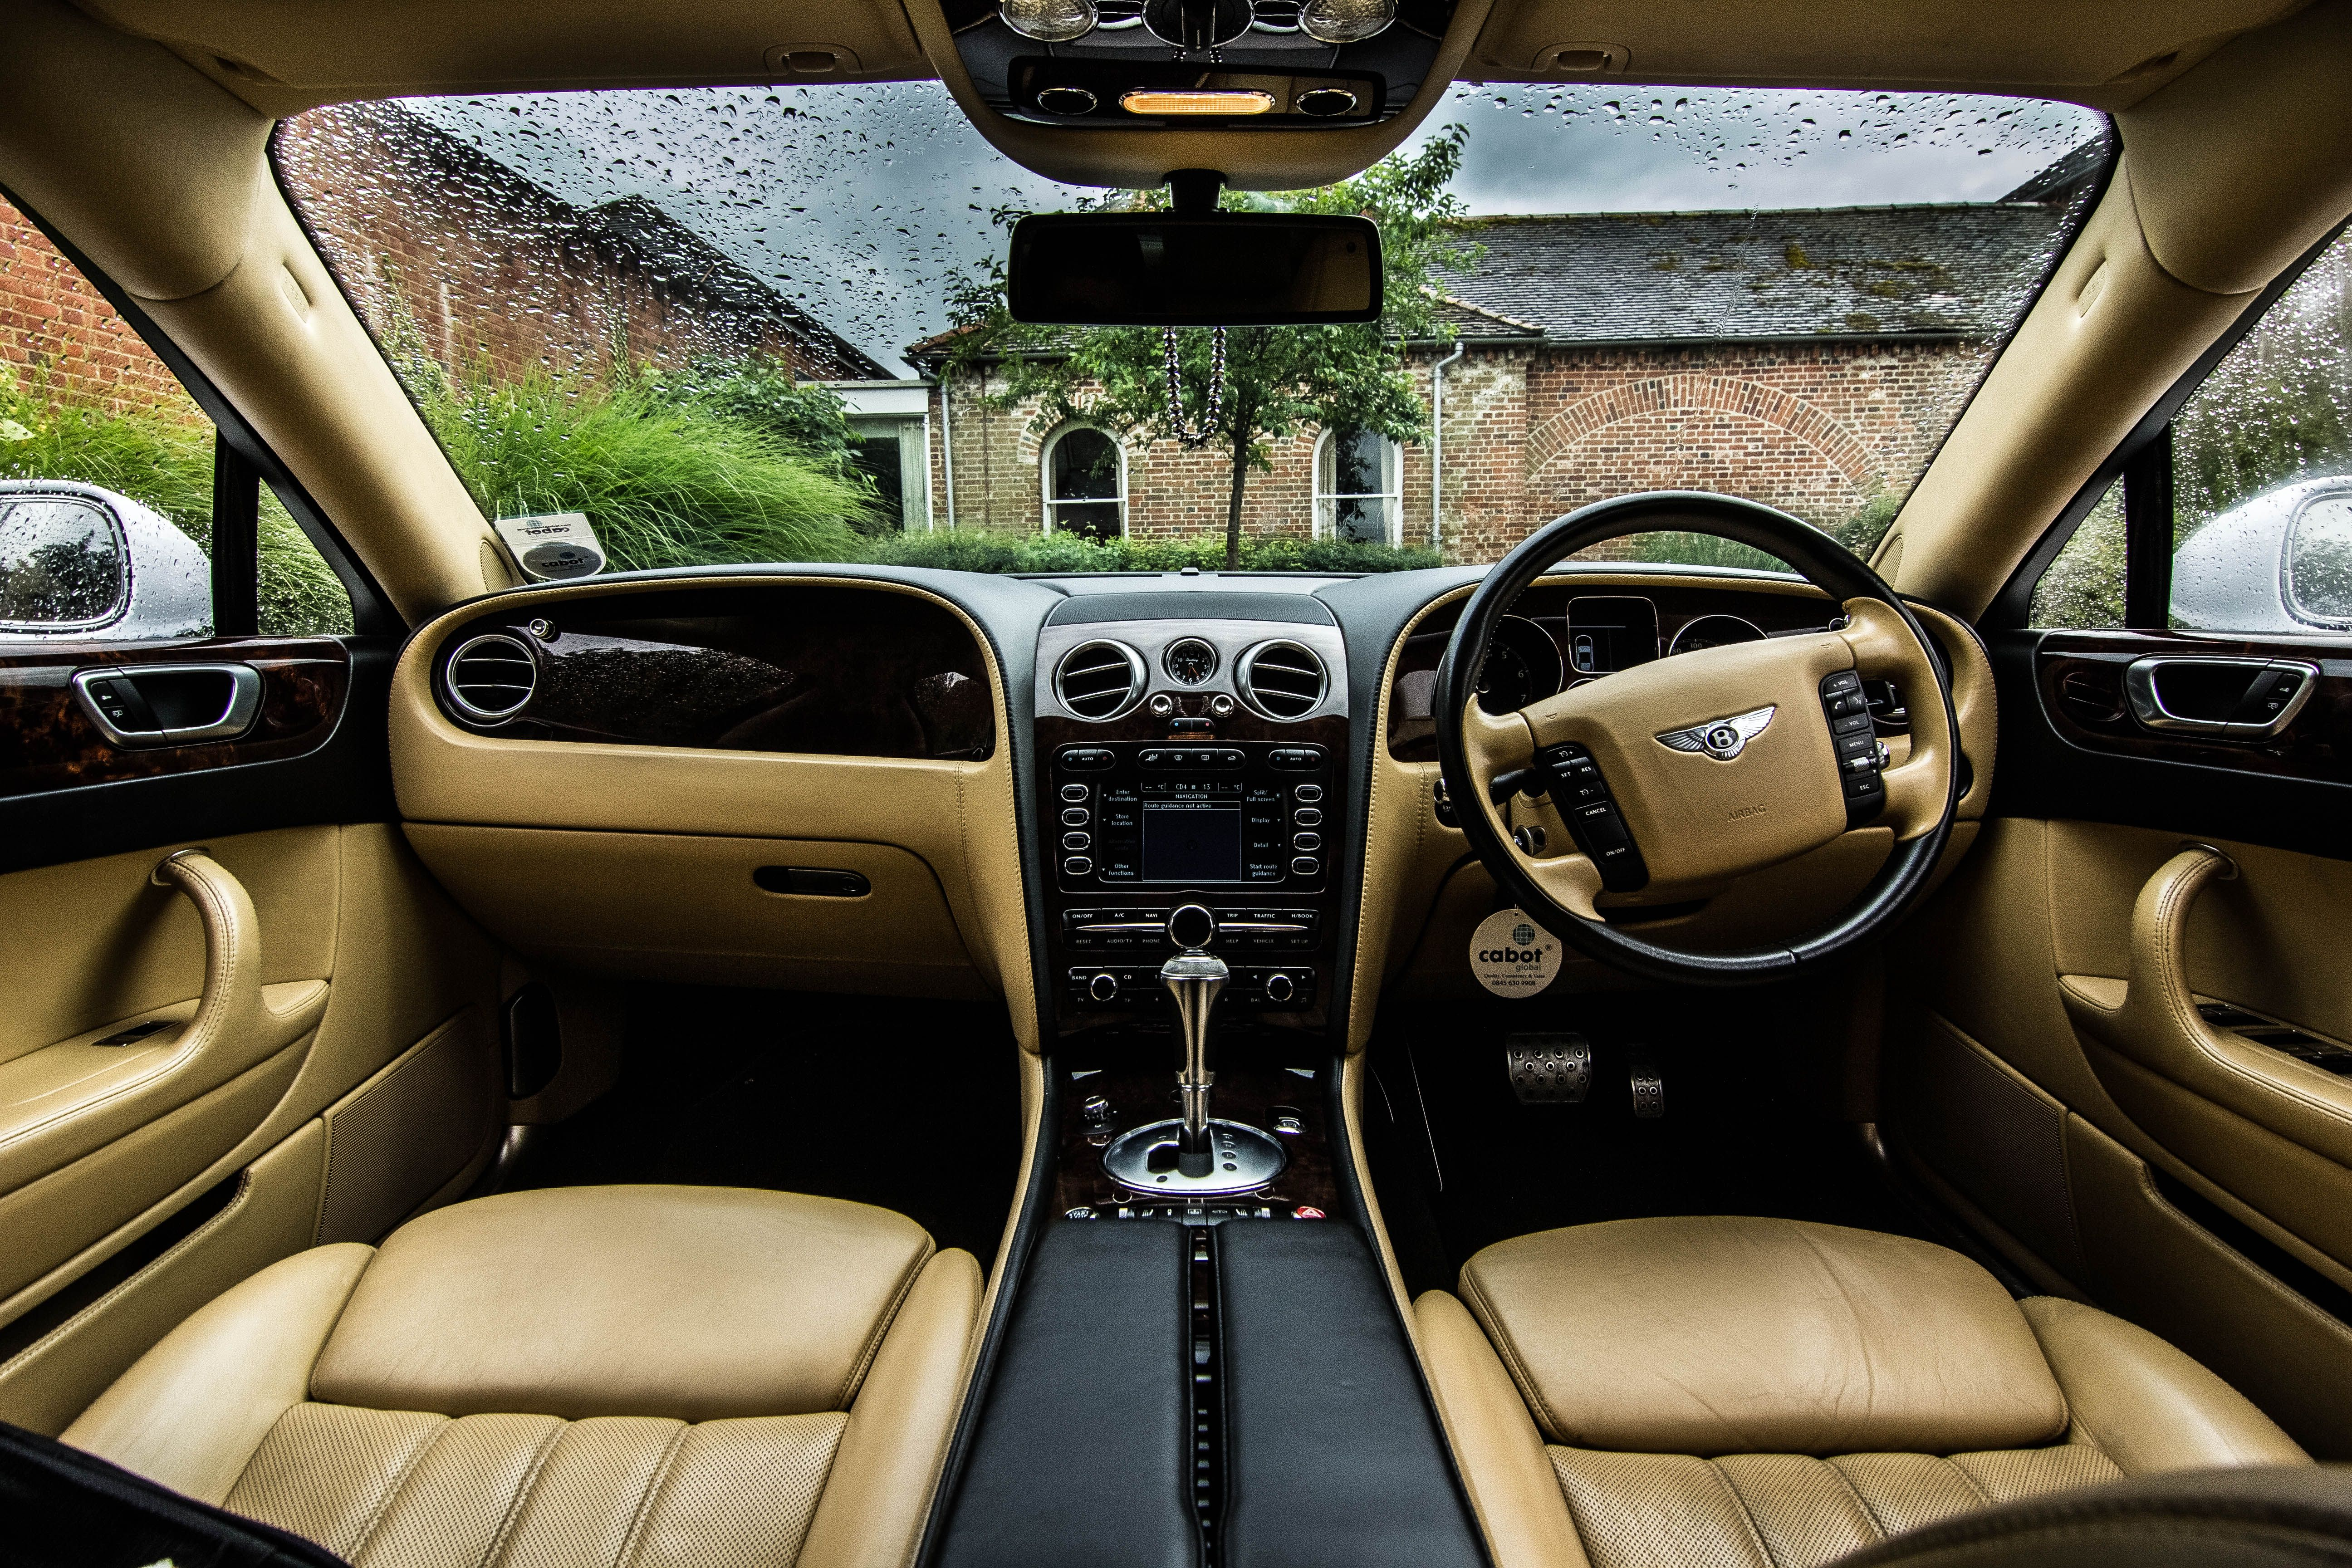 miami exotic dollar services mph club rental million membership category bentley car experience